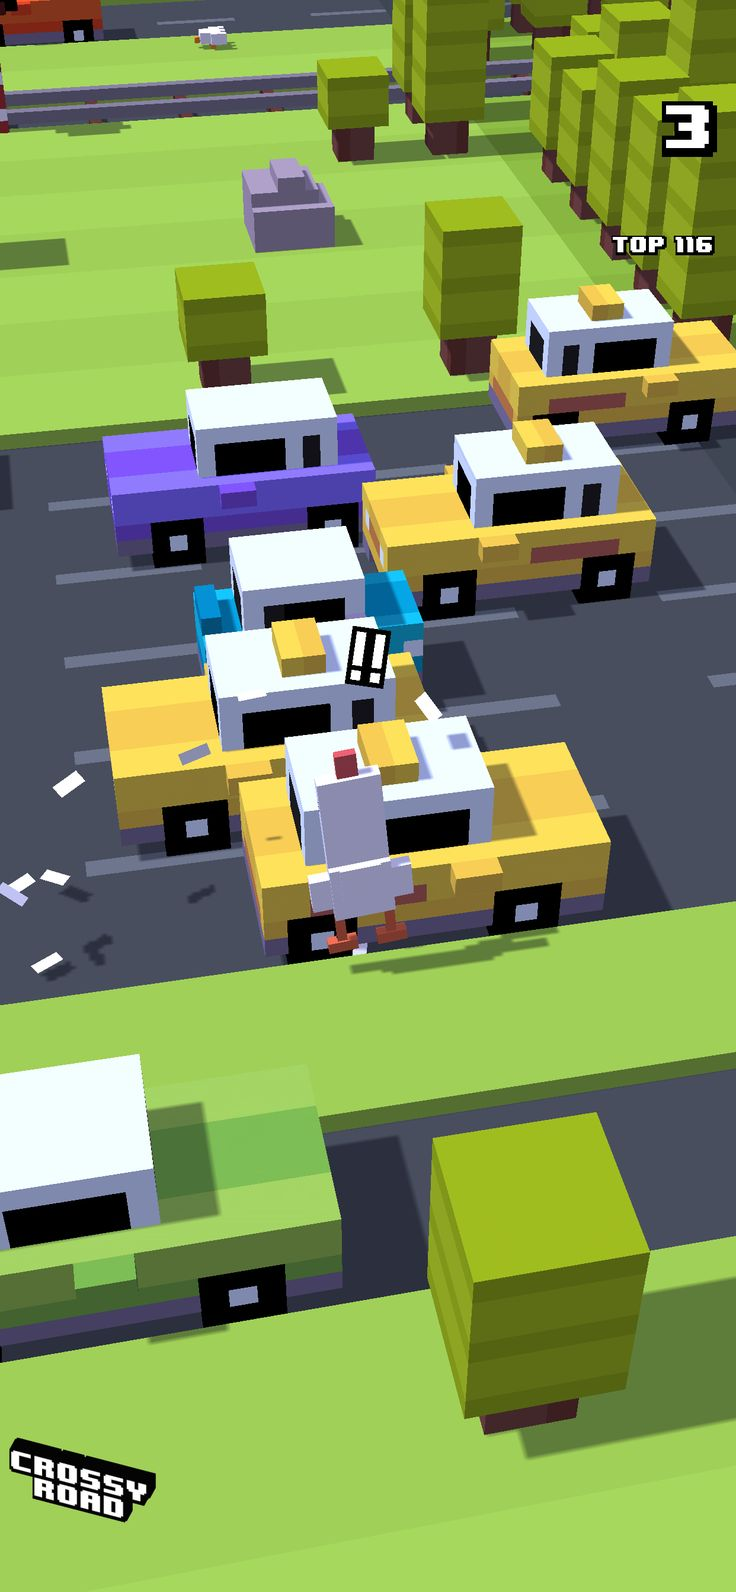 3 on crossyroad. My top is 116. in